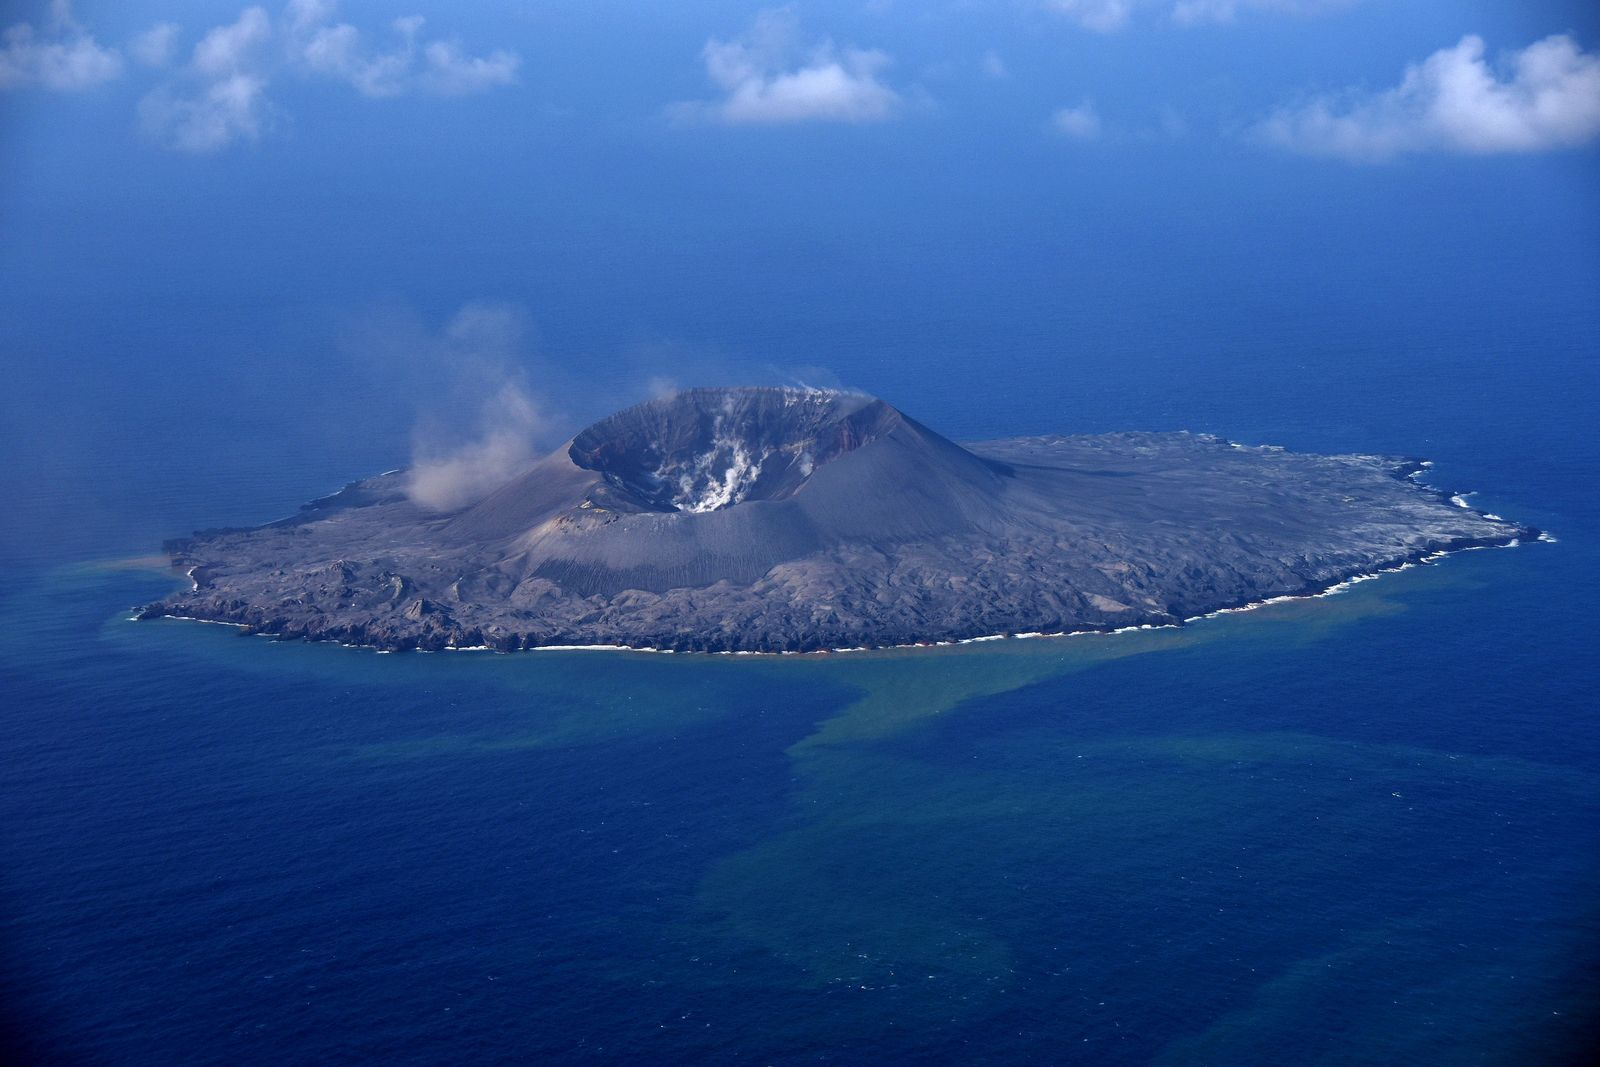 Nishinoshima - overview of 24.11.2020 - no activity; large dispersion of discolored water - photo Japan Coast Guards